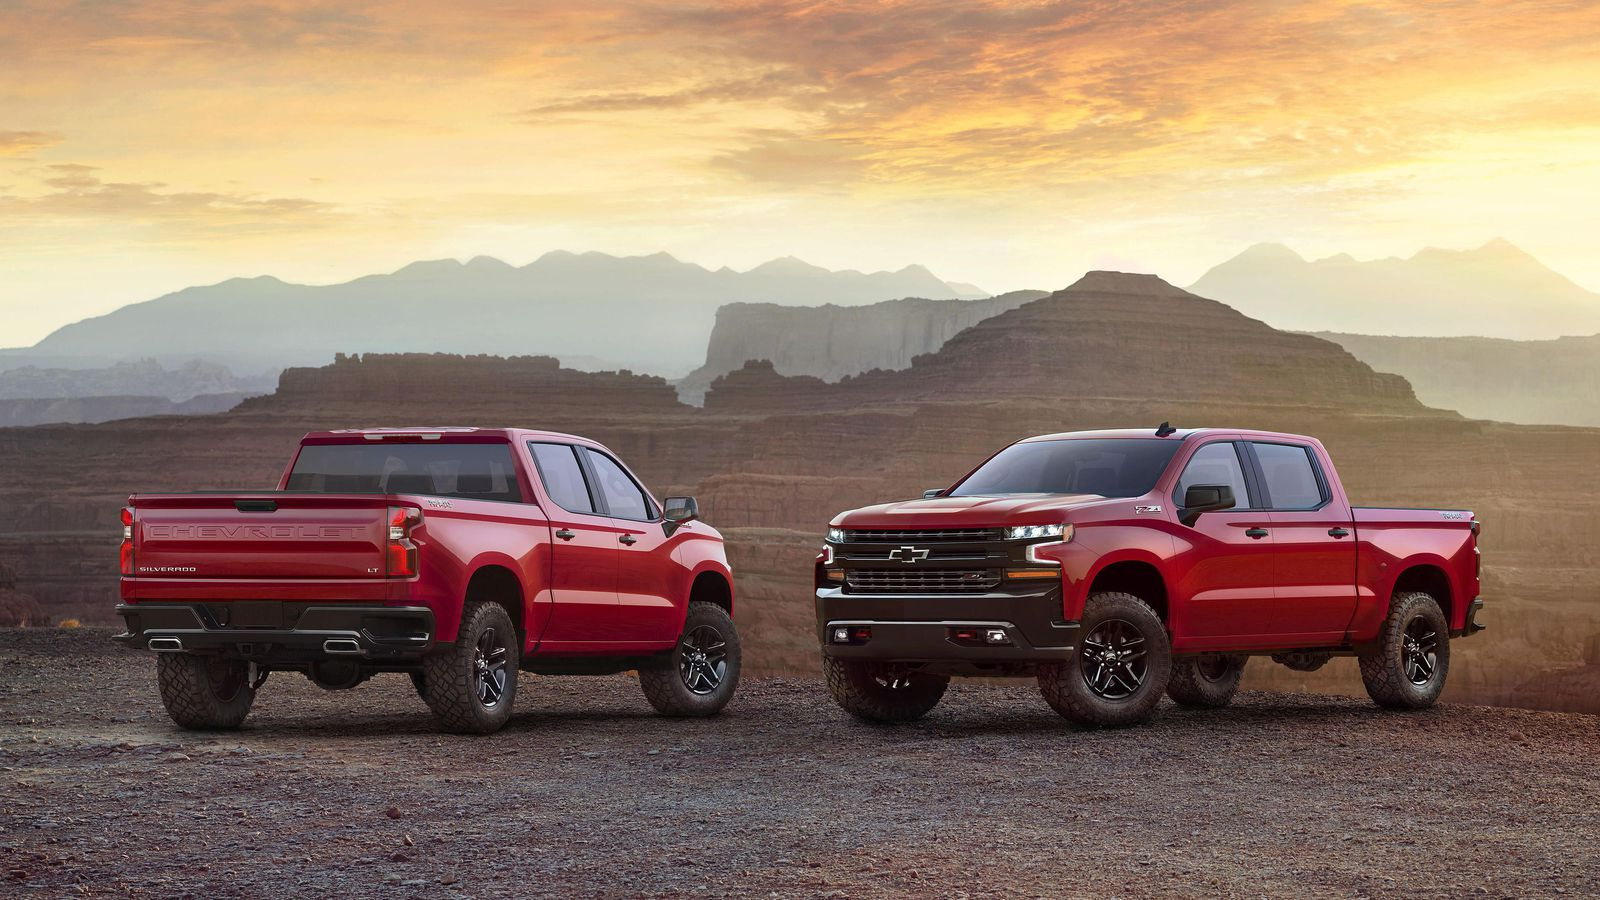 2019 Chevrolet Silverado picture front and back